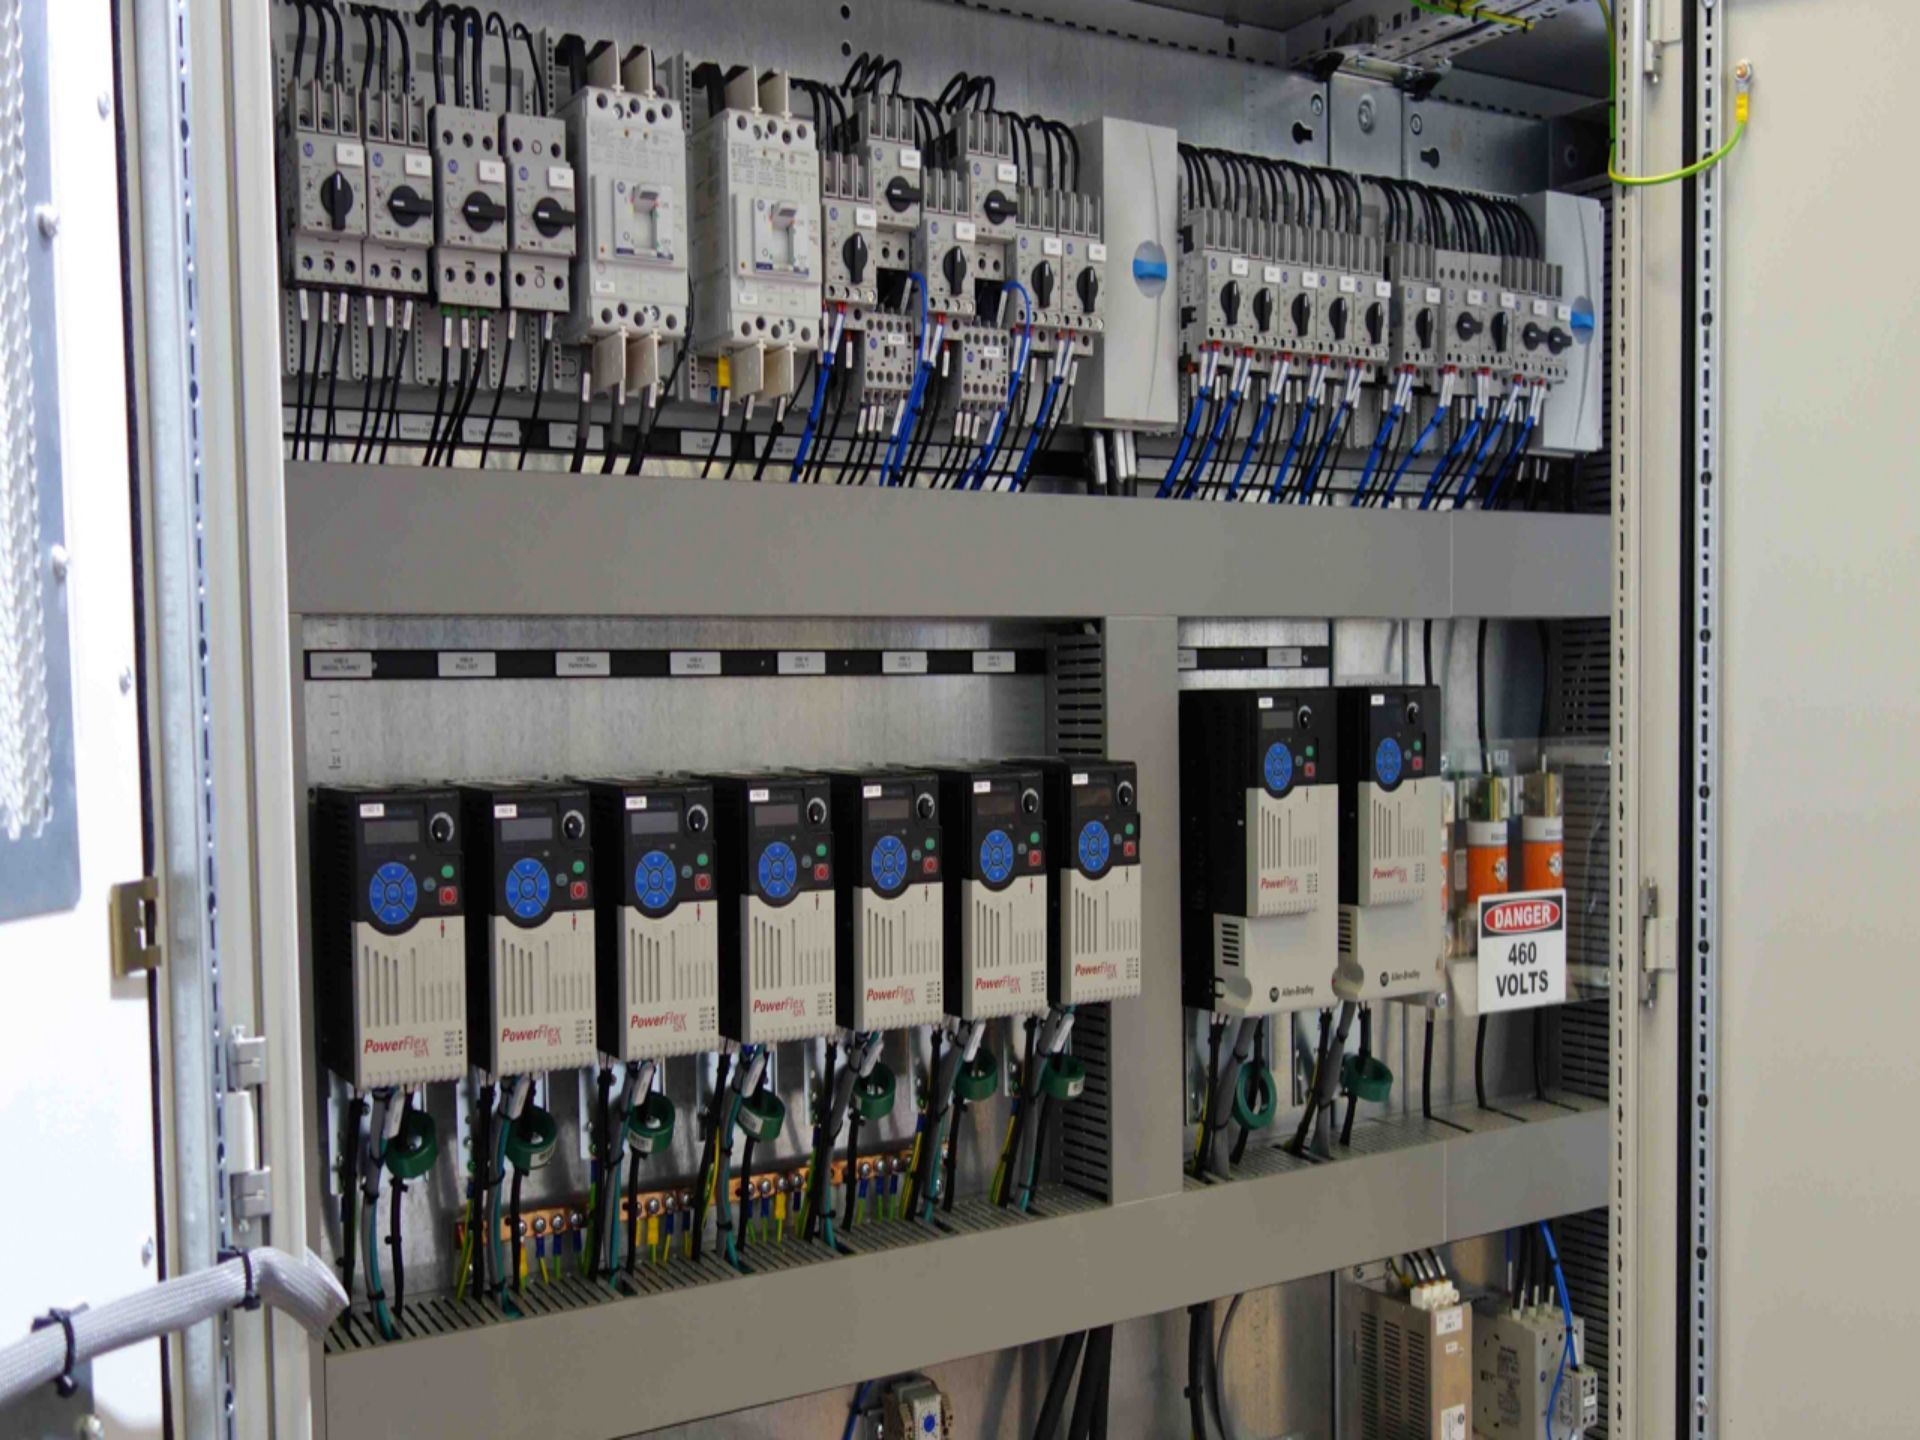 Axis Controls build control panels using UL508a components